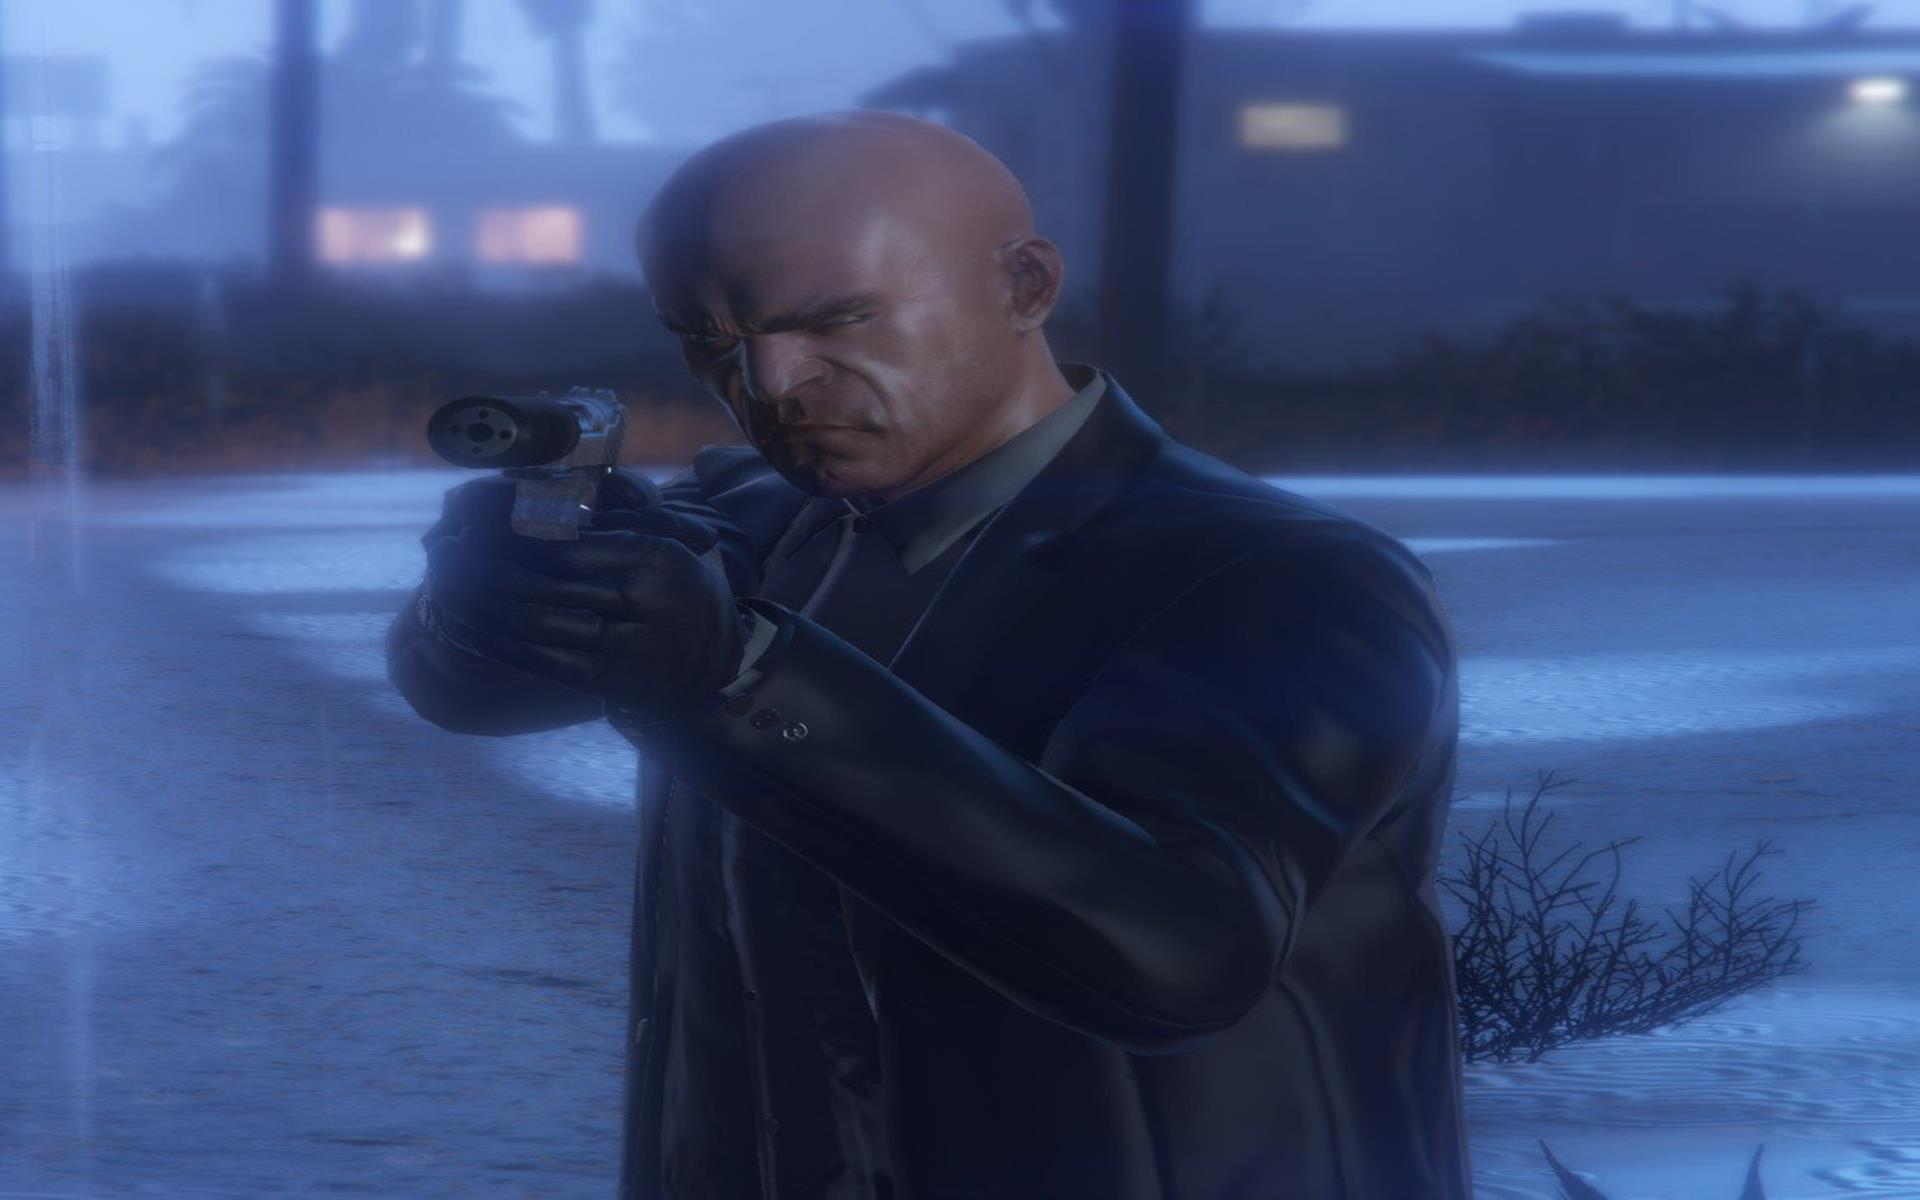 Gta 5 Mods Become Hitman Agent 47 Or Drive The Car From